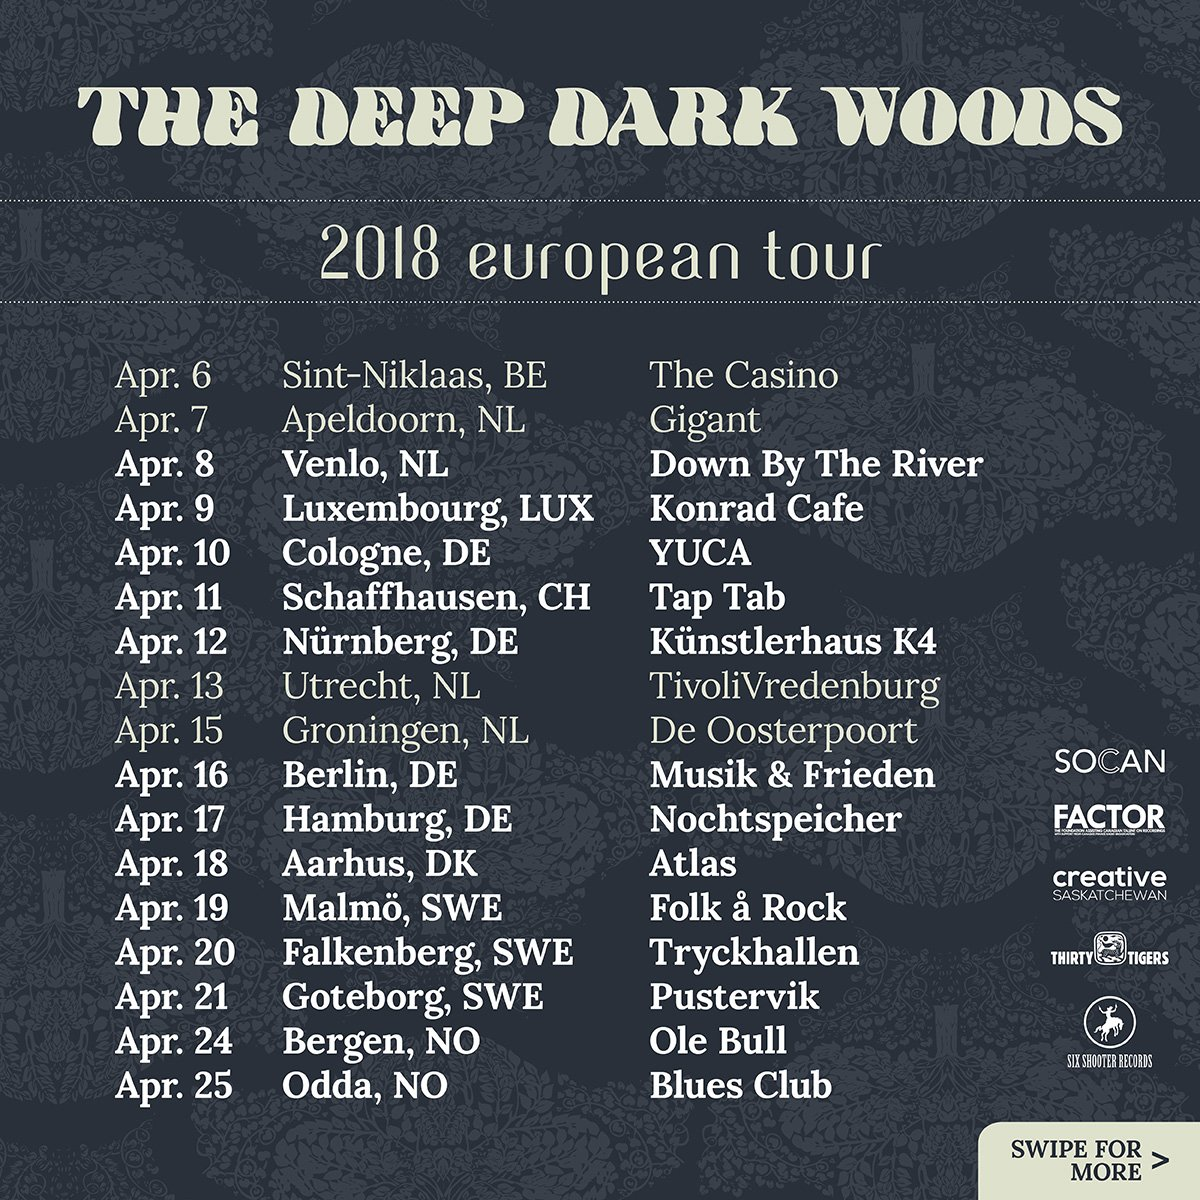 The Deep Dark Woods on Twitter: